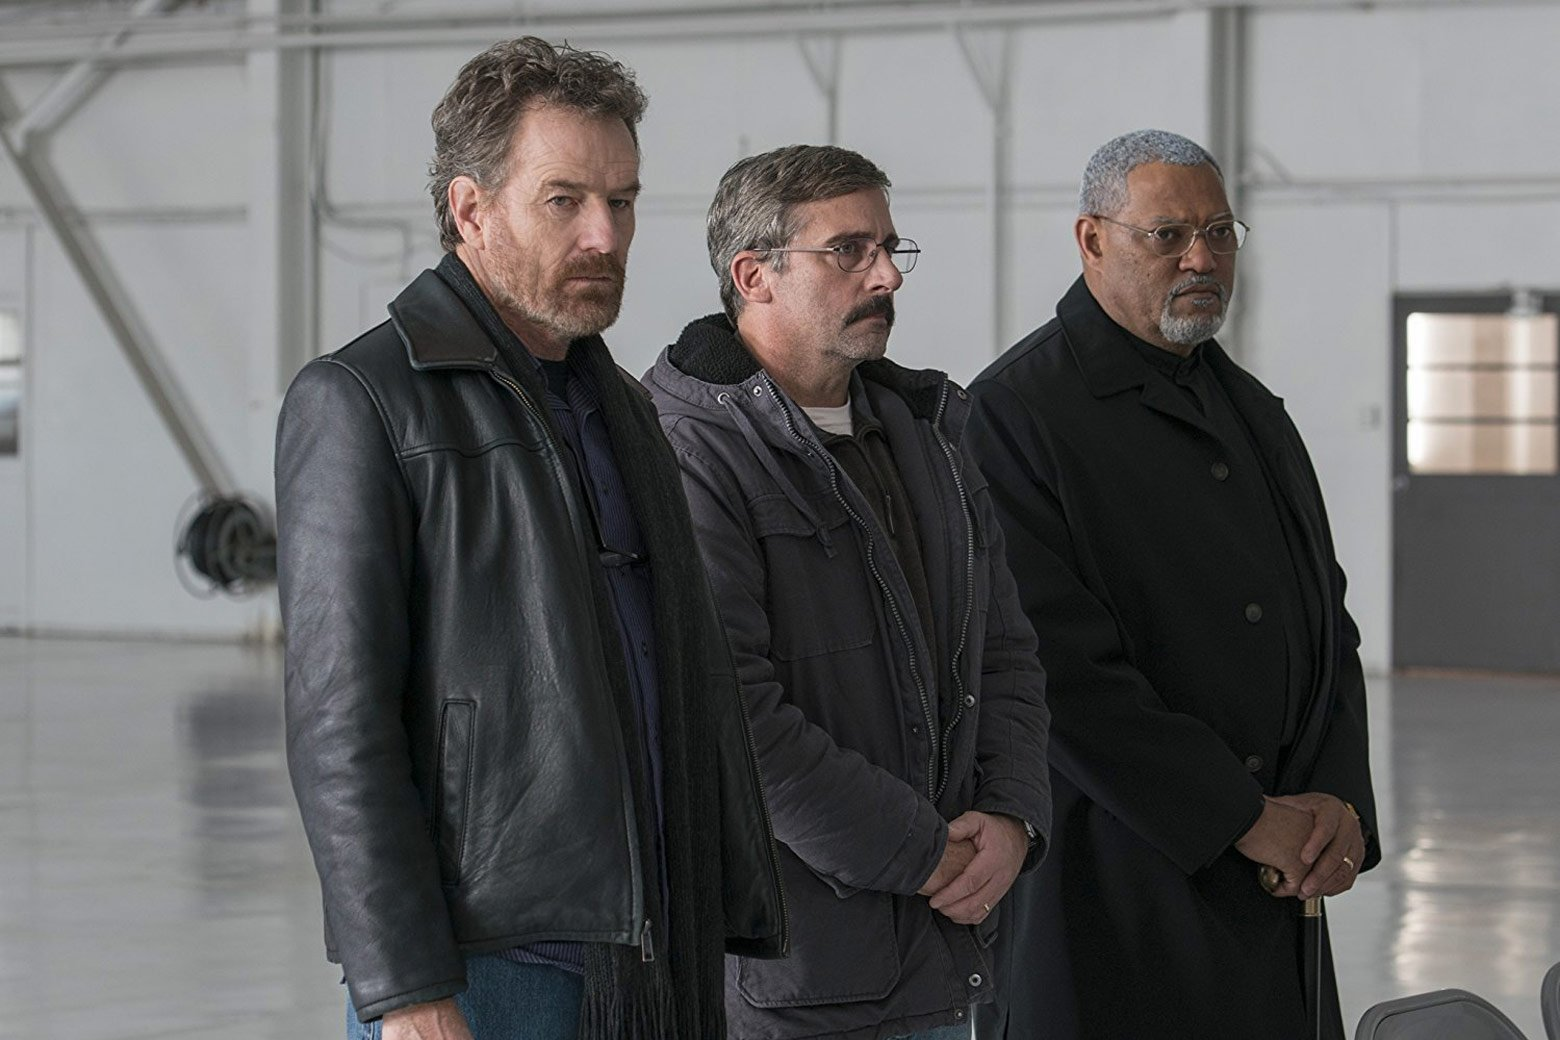 Richard Linklater's Last Flag Flying is so much more than a sequel to The Last Detail. https://t.co/933vdXZ8Rg https://t.co/v6QC8XEOnH